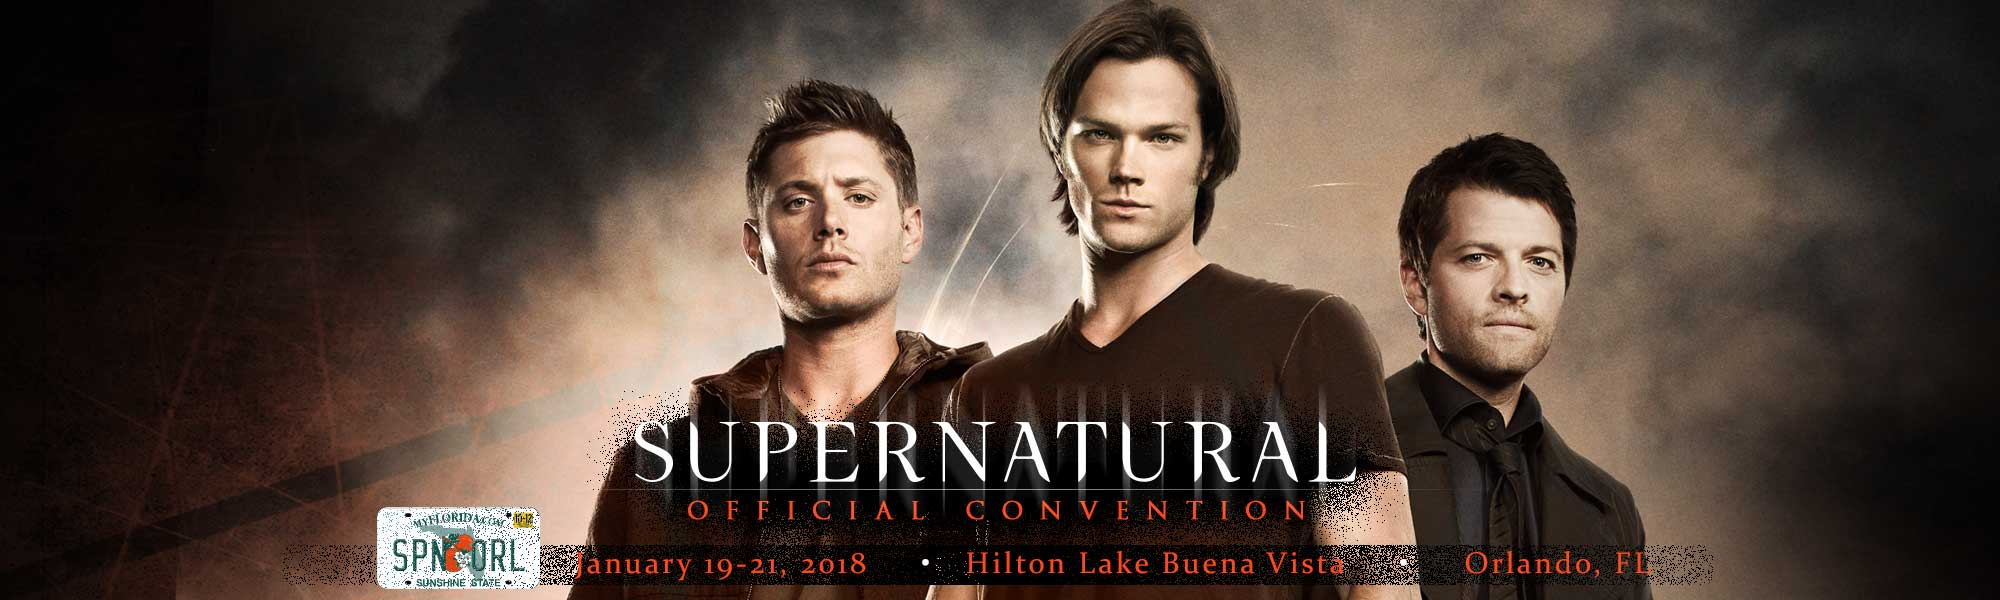 Creation Entertainment's Supernatural Offical Convention in Orlando, FL